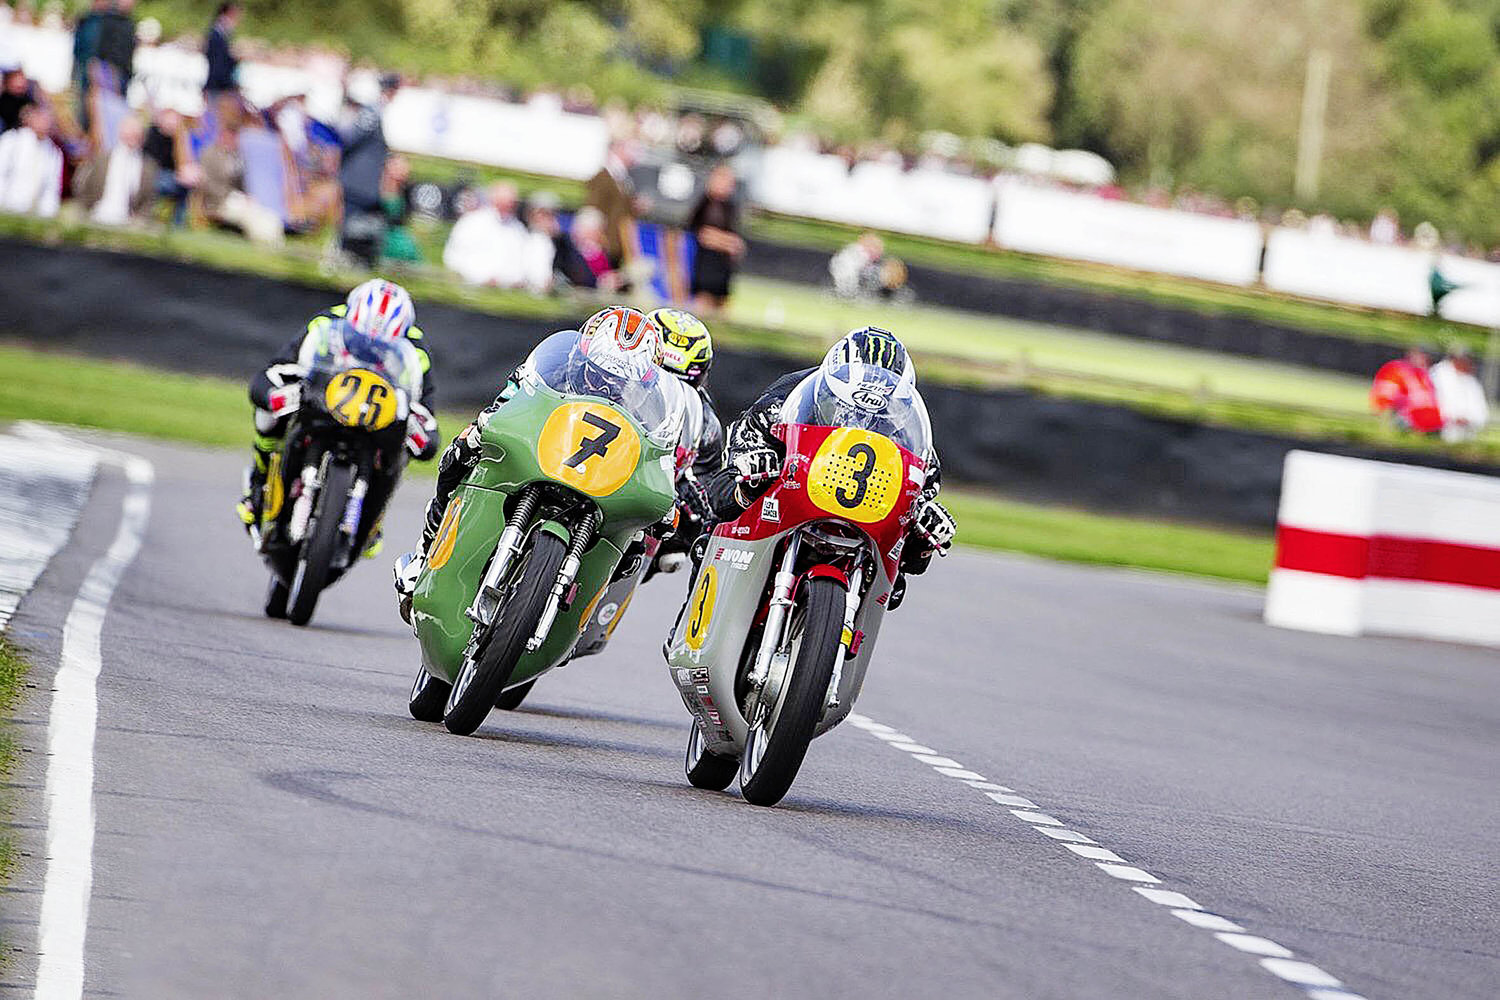 McWilliams gets his head down in pursuit of Dunlop at the Goodwood Revival